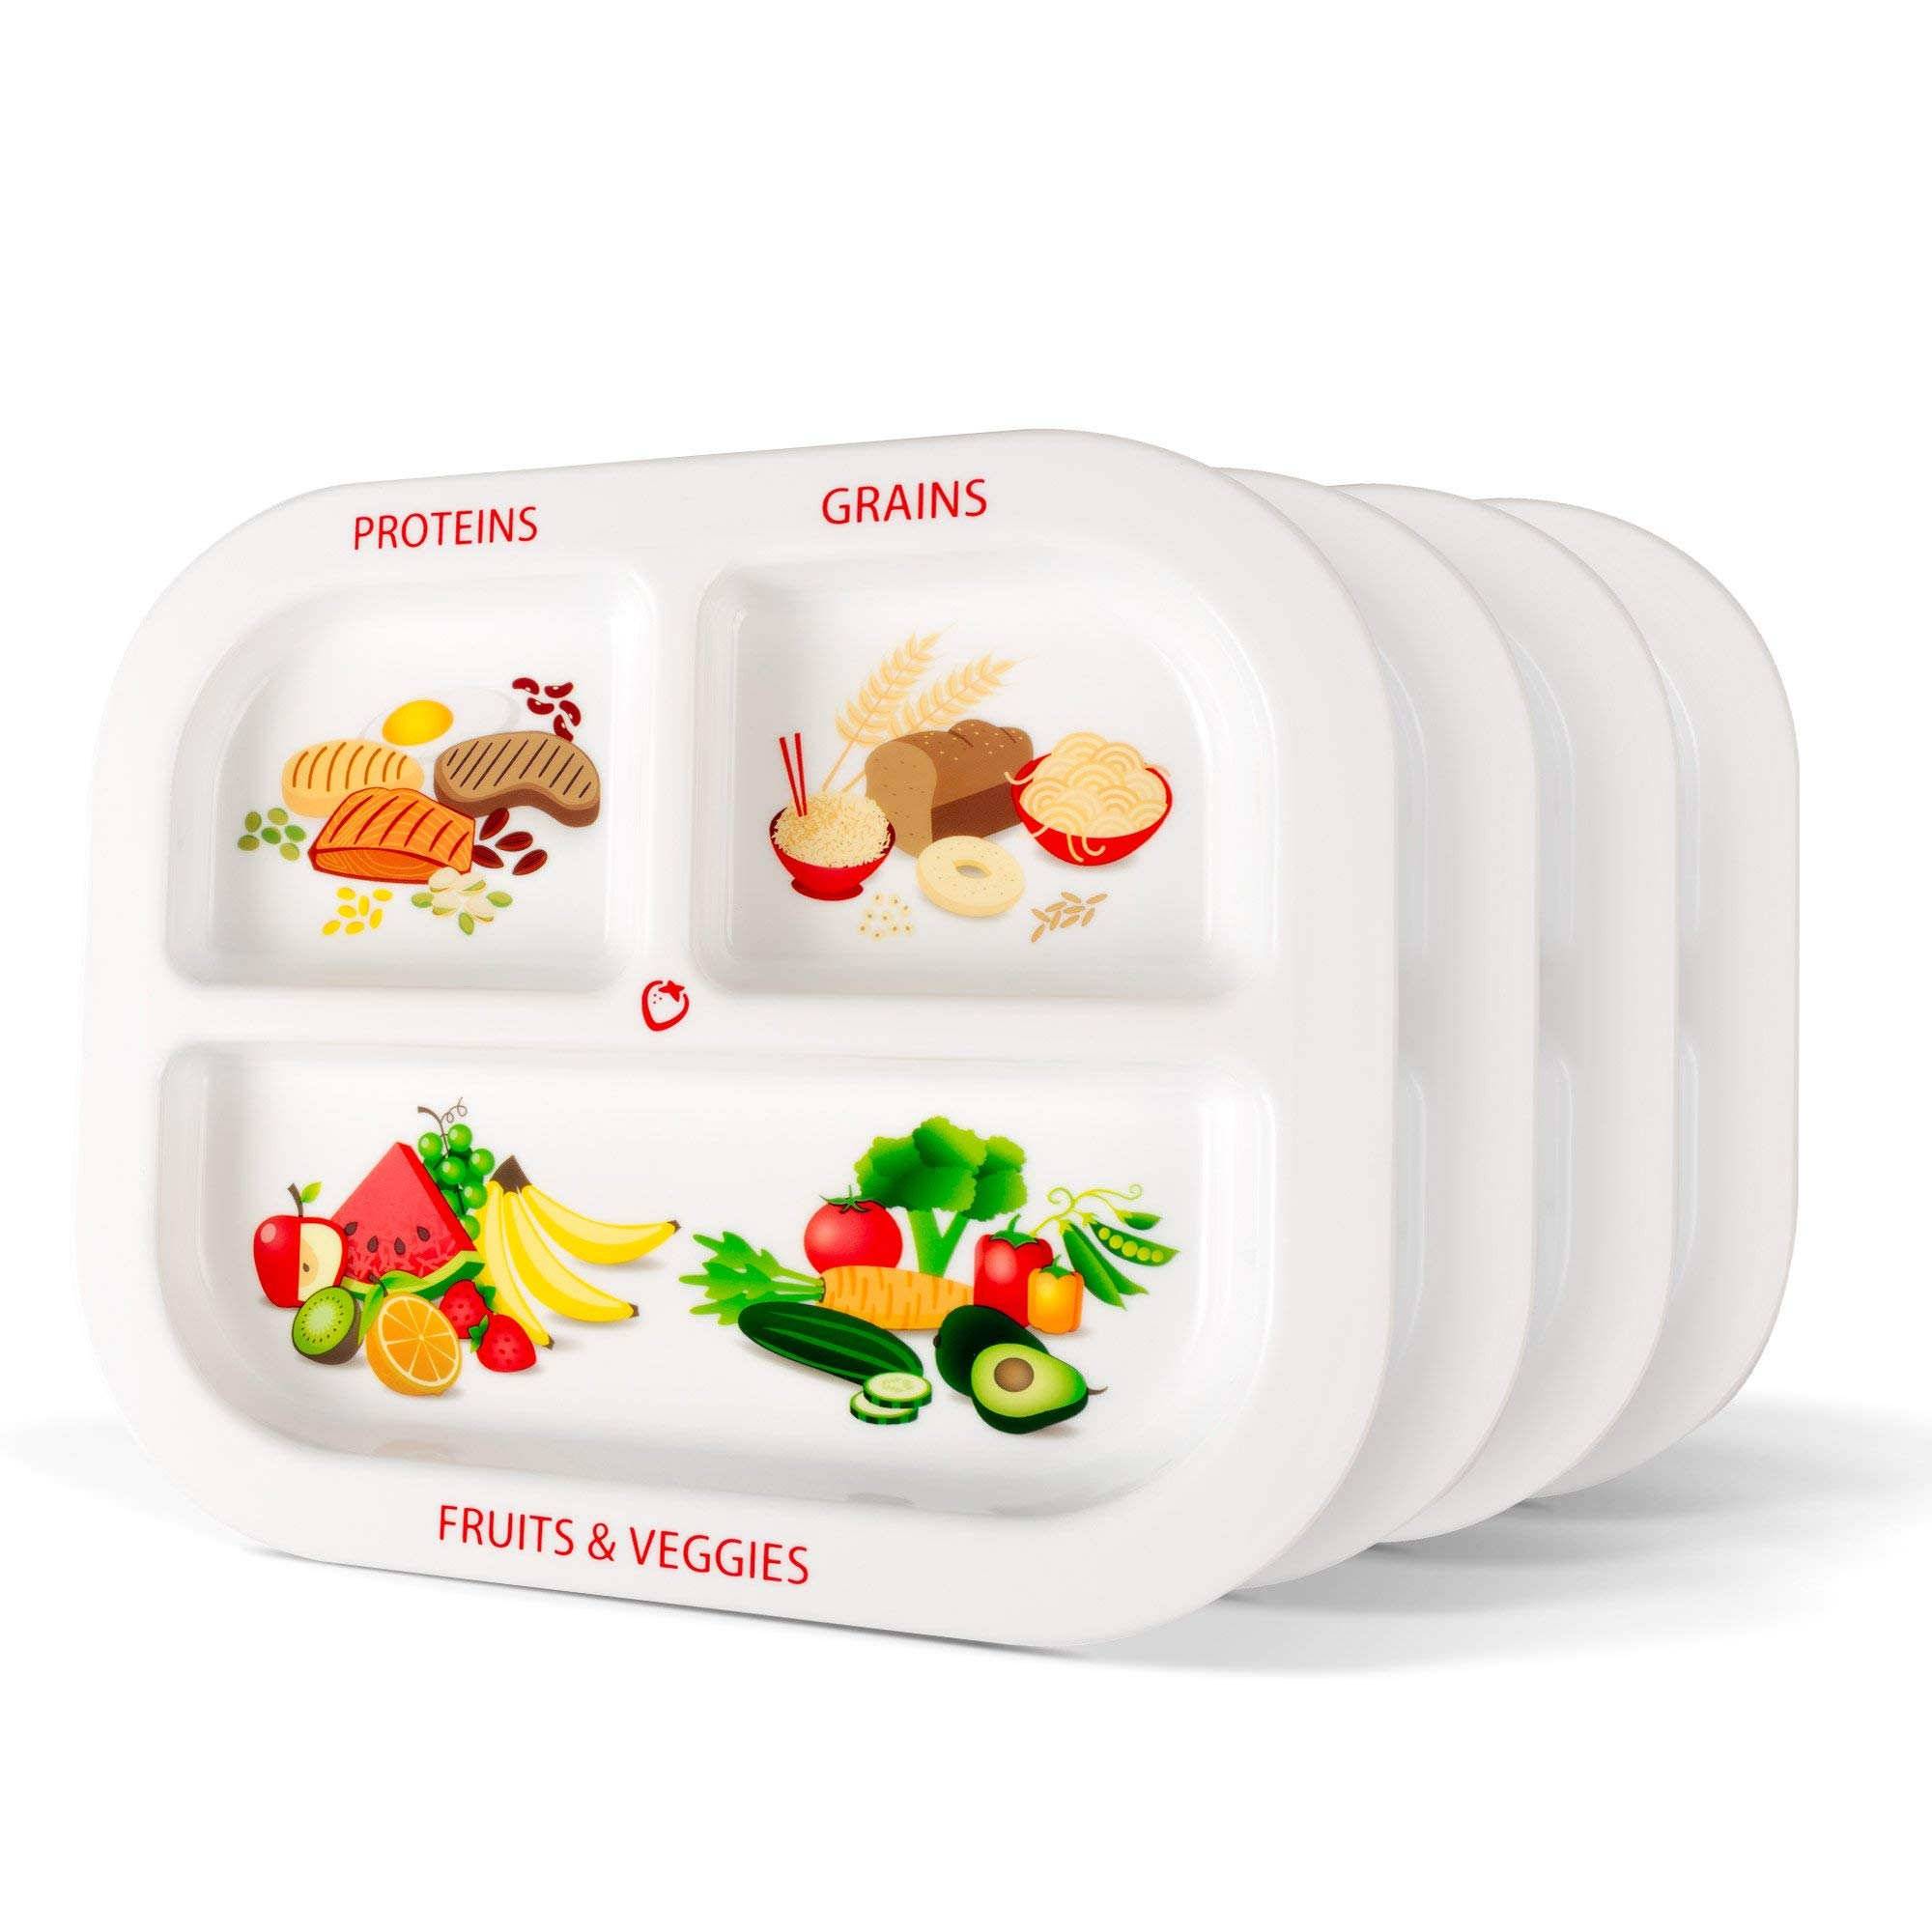 Healthy Habits Divided Kids Portion Plate 4-Pack, 3 Fun & Balanced Sections for Picky Eaters: Fruits & Veggies, Grains, and Protein by Super Healthy Kids